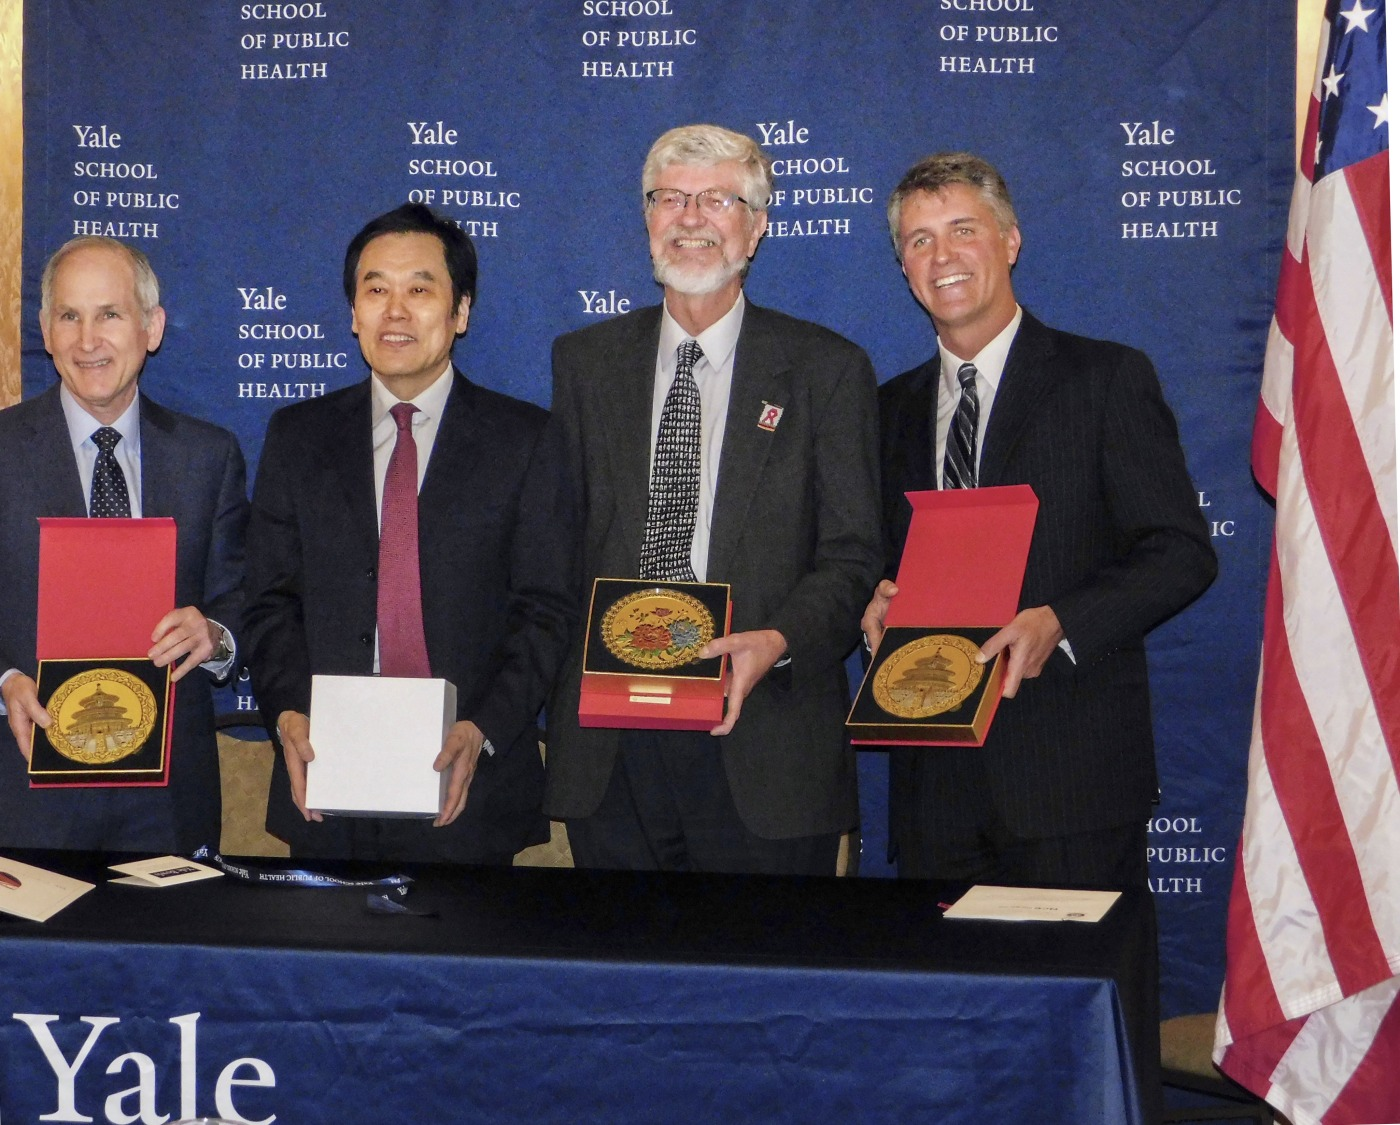 Representatives from Yale and the National Cancer Center of China exchange gifts during official signing ceremony.